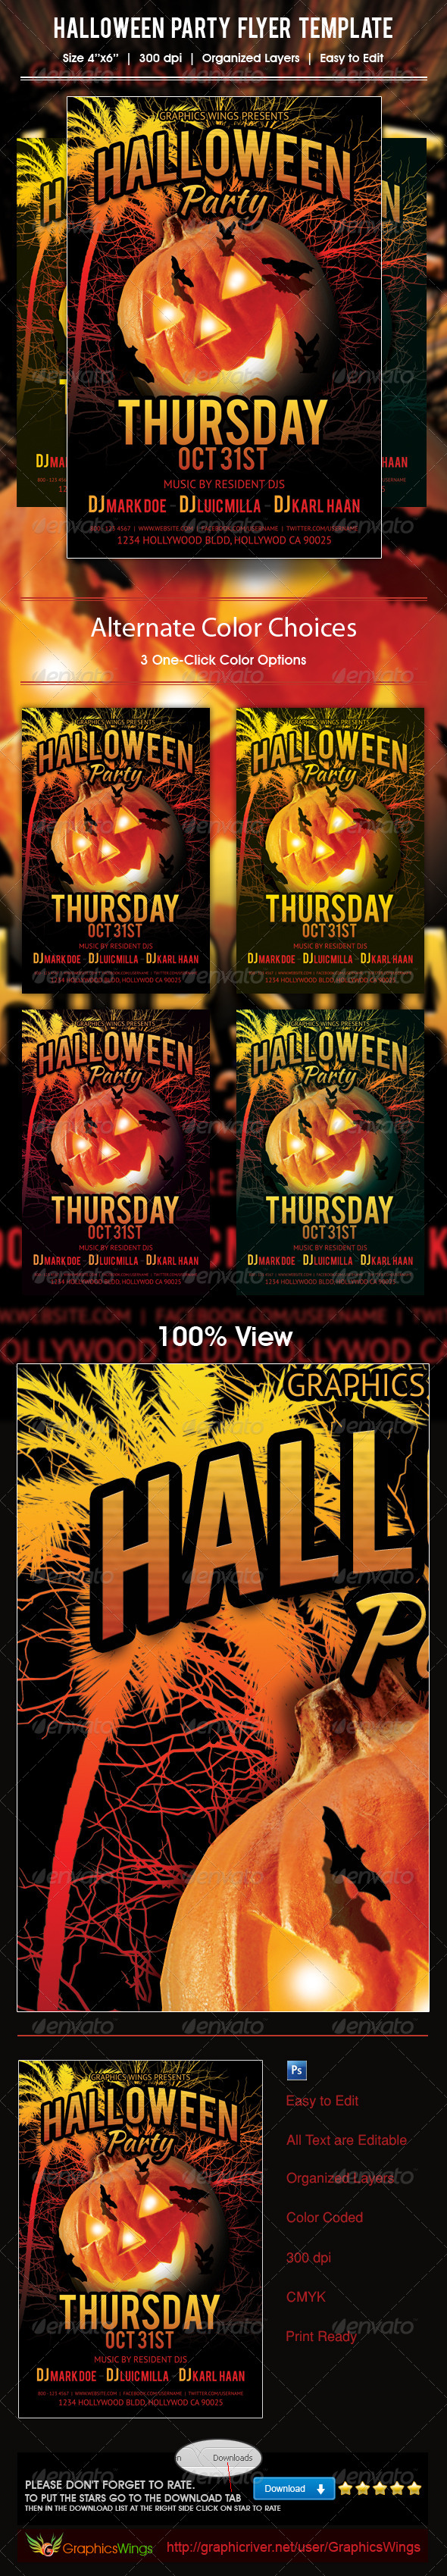 GraphicRiver Halloween Party Flyer Template 5935860